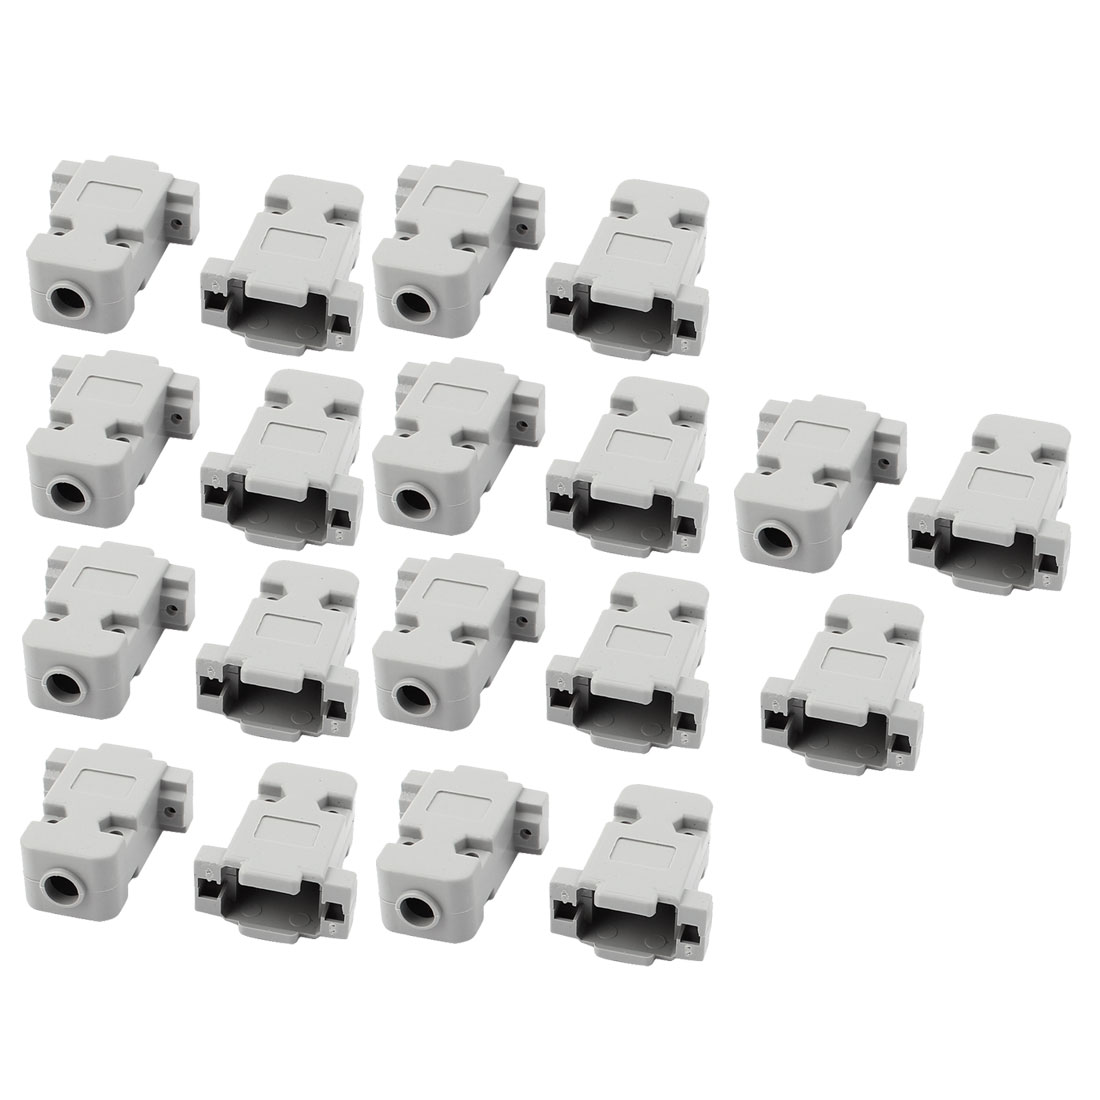 19 Pcs D-Sub DB9 9Pin Connector Plastic Hood Cover Housing Shell Protector Gray